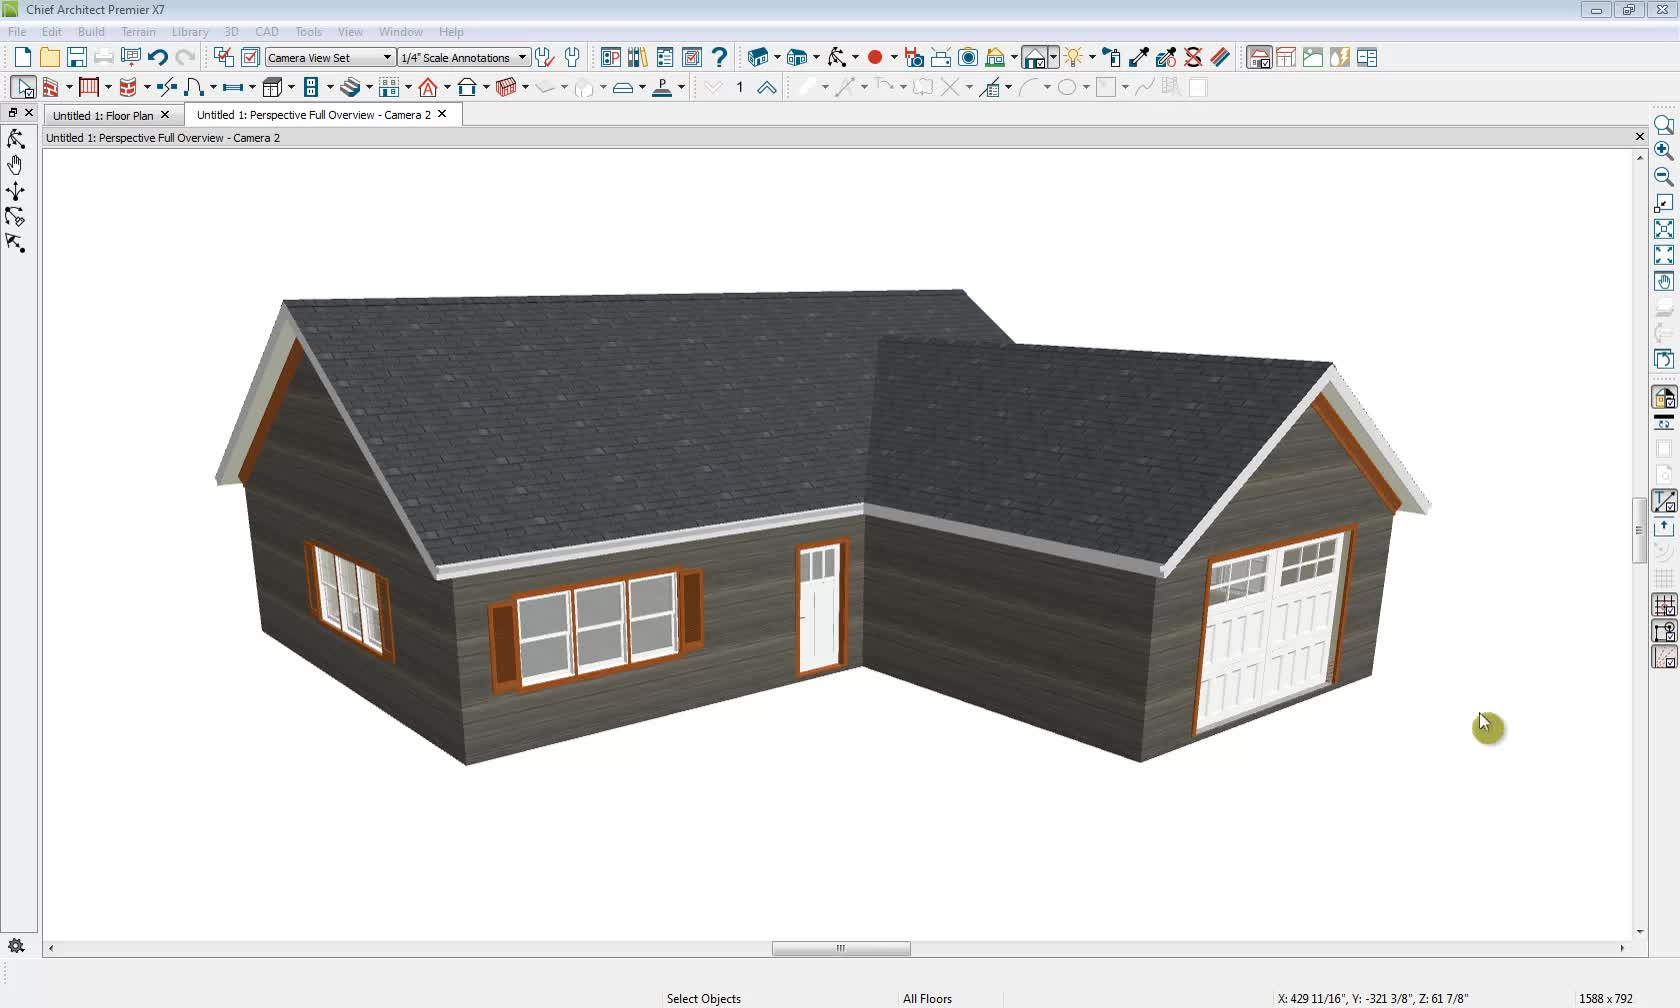 Generating A Roof Over An L Shaped House With Gable Ends